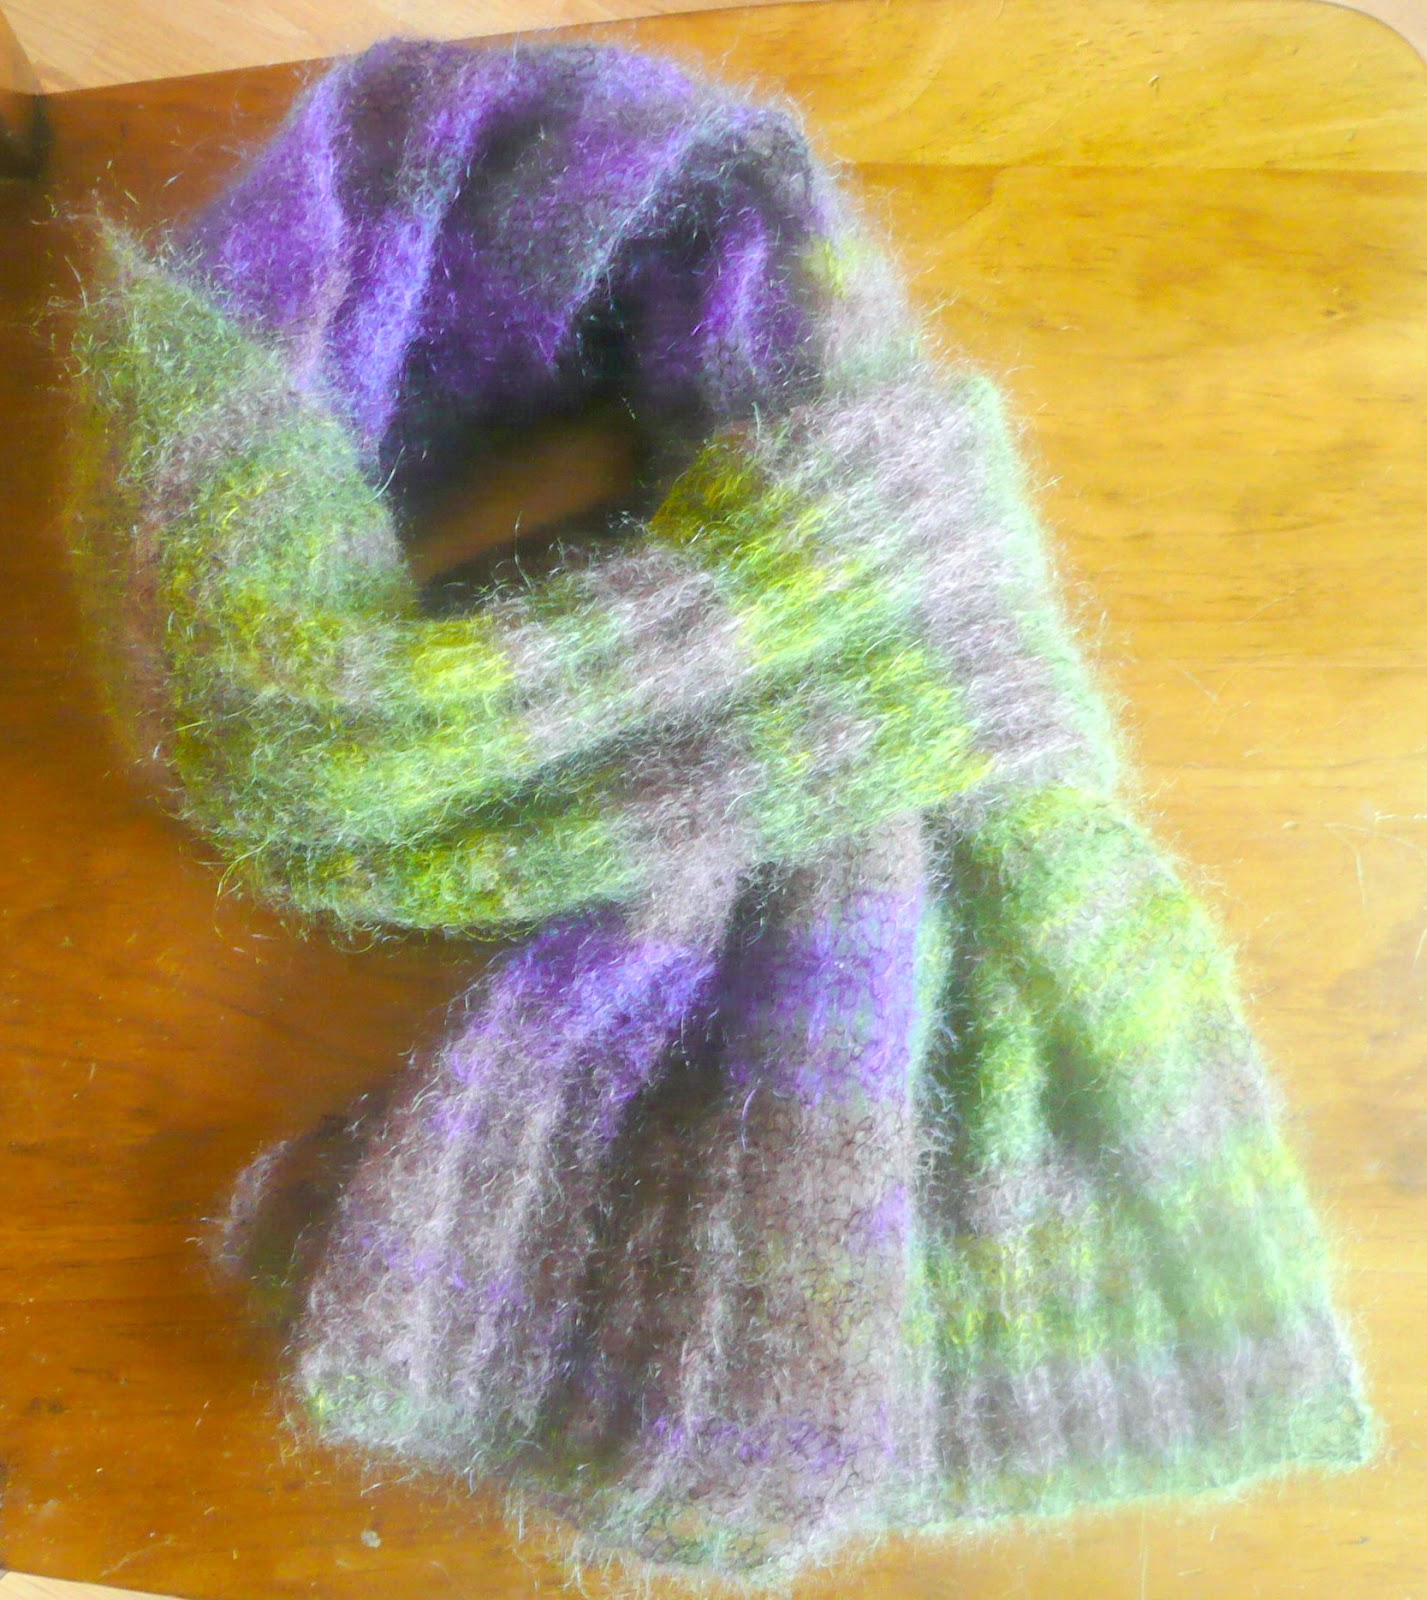 Free Knitting Pattern For Mohair Shawl : Ceradka Crafts: The wonder of mohair - a free scarf knitting pattern